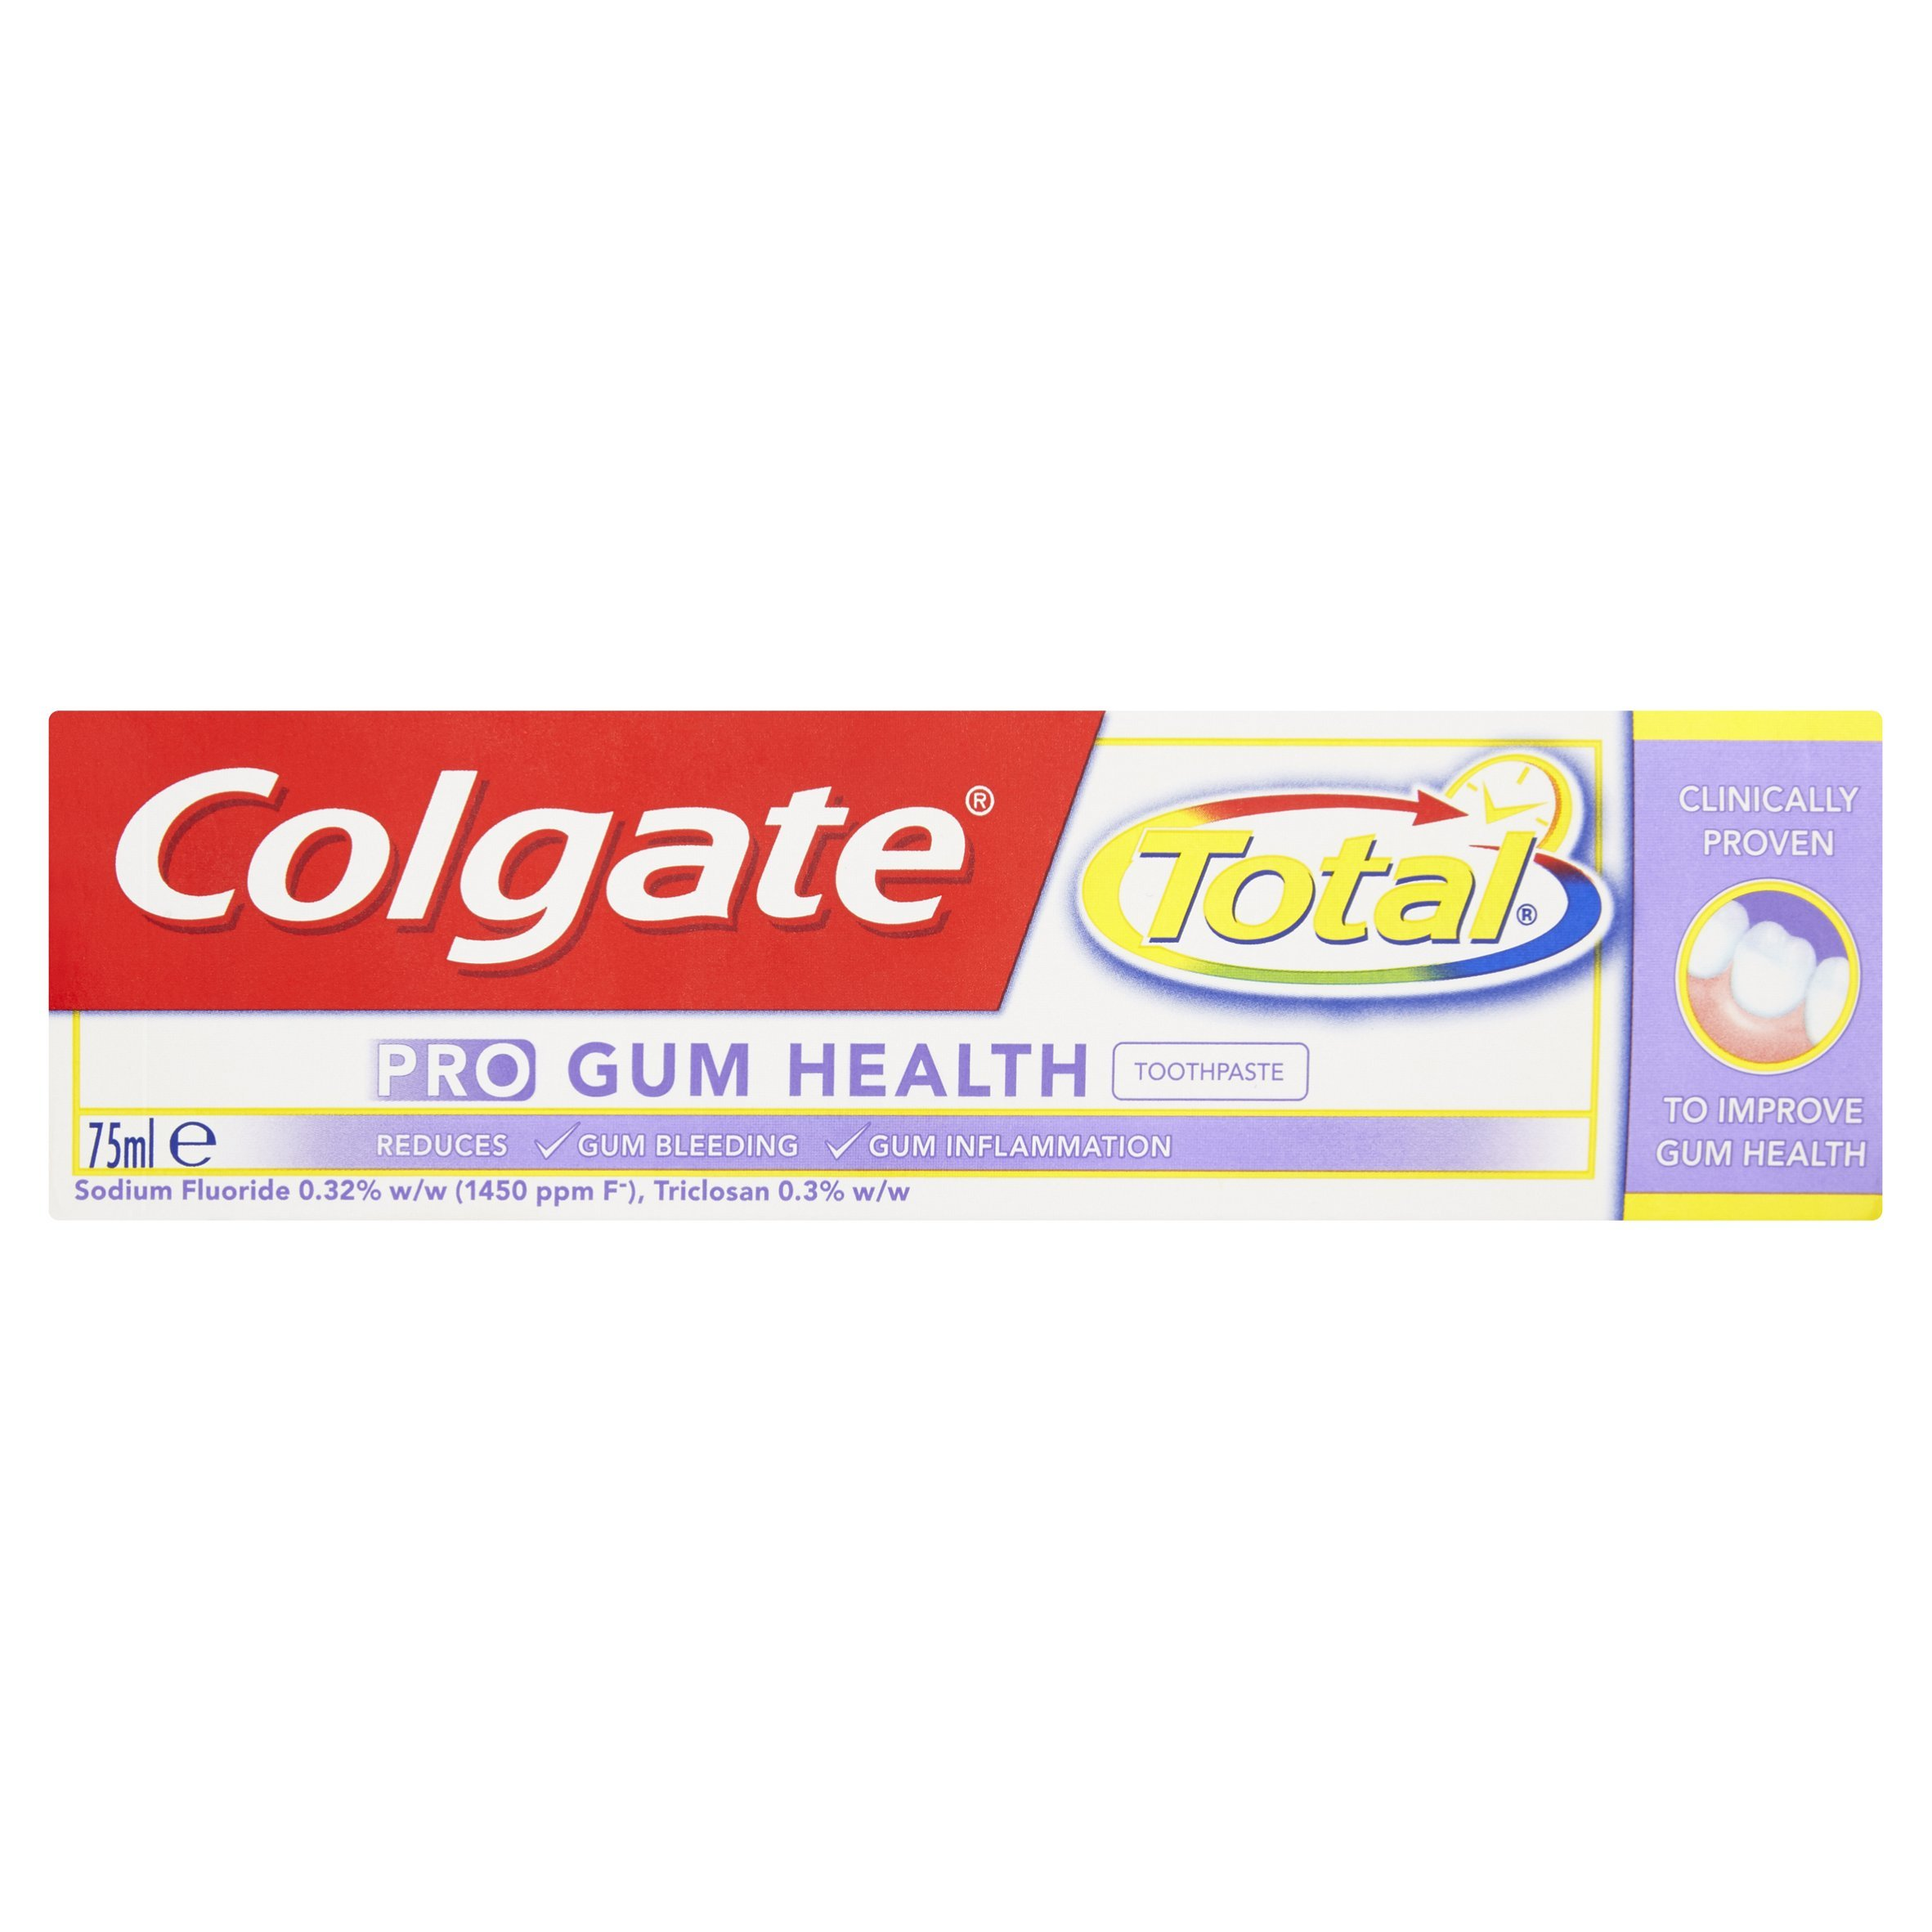 Colgate Total Pro Gum Health Toothpaste, 75ml